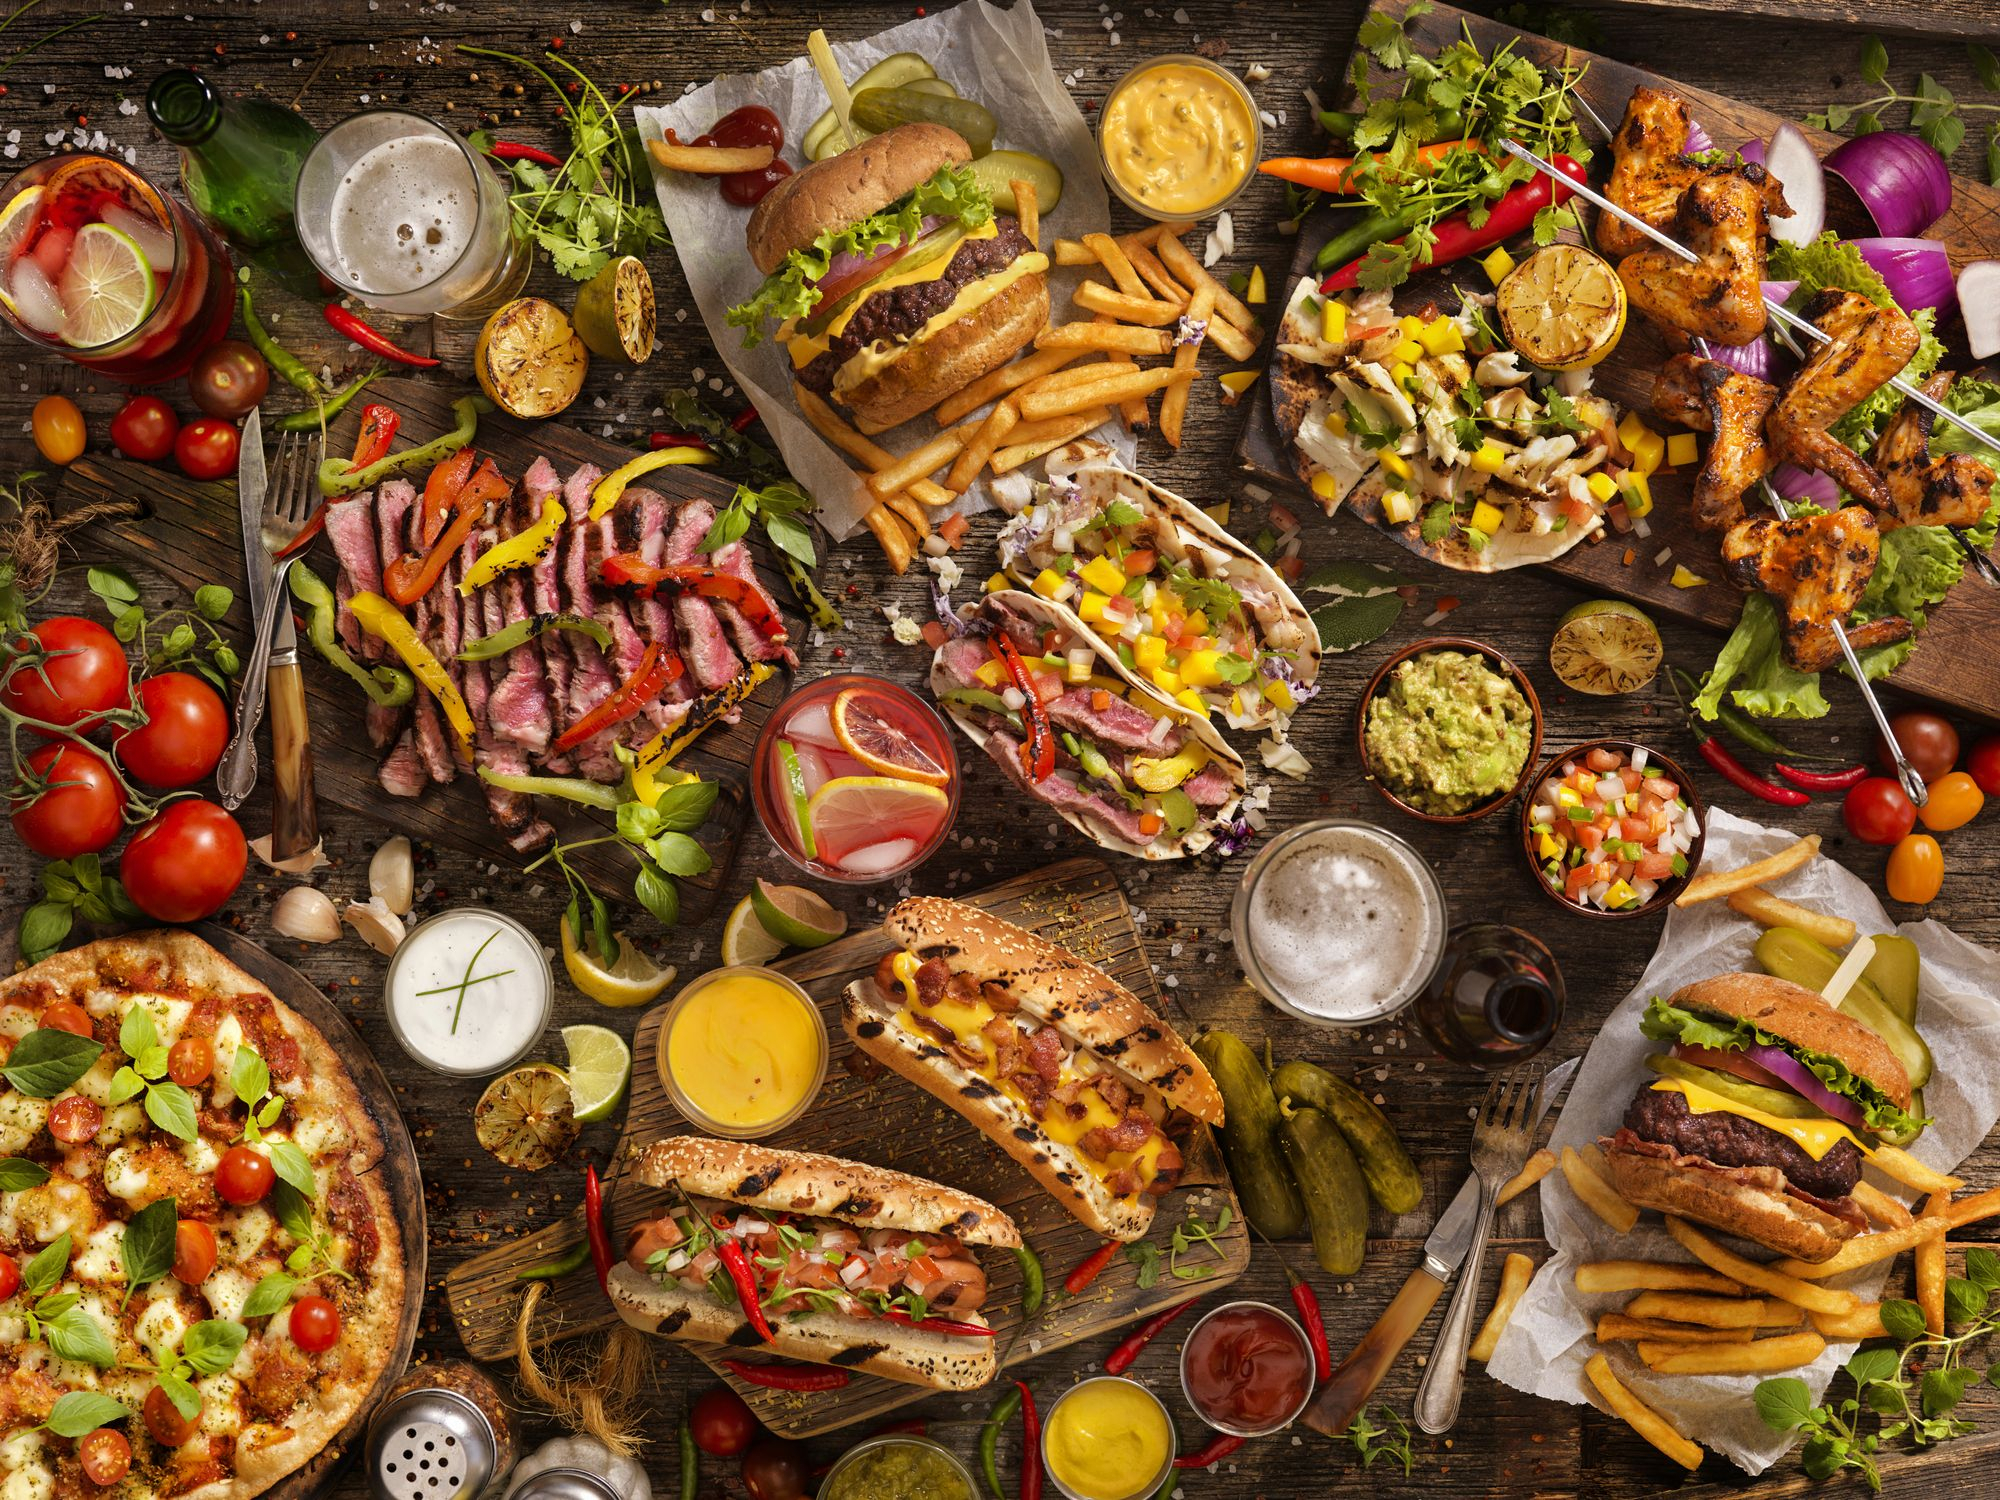 National Food Days 2019  Free Food & Drink Holidays This Year pertaining to National Food Days 2020